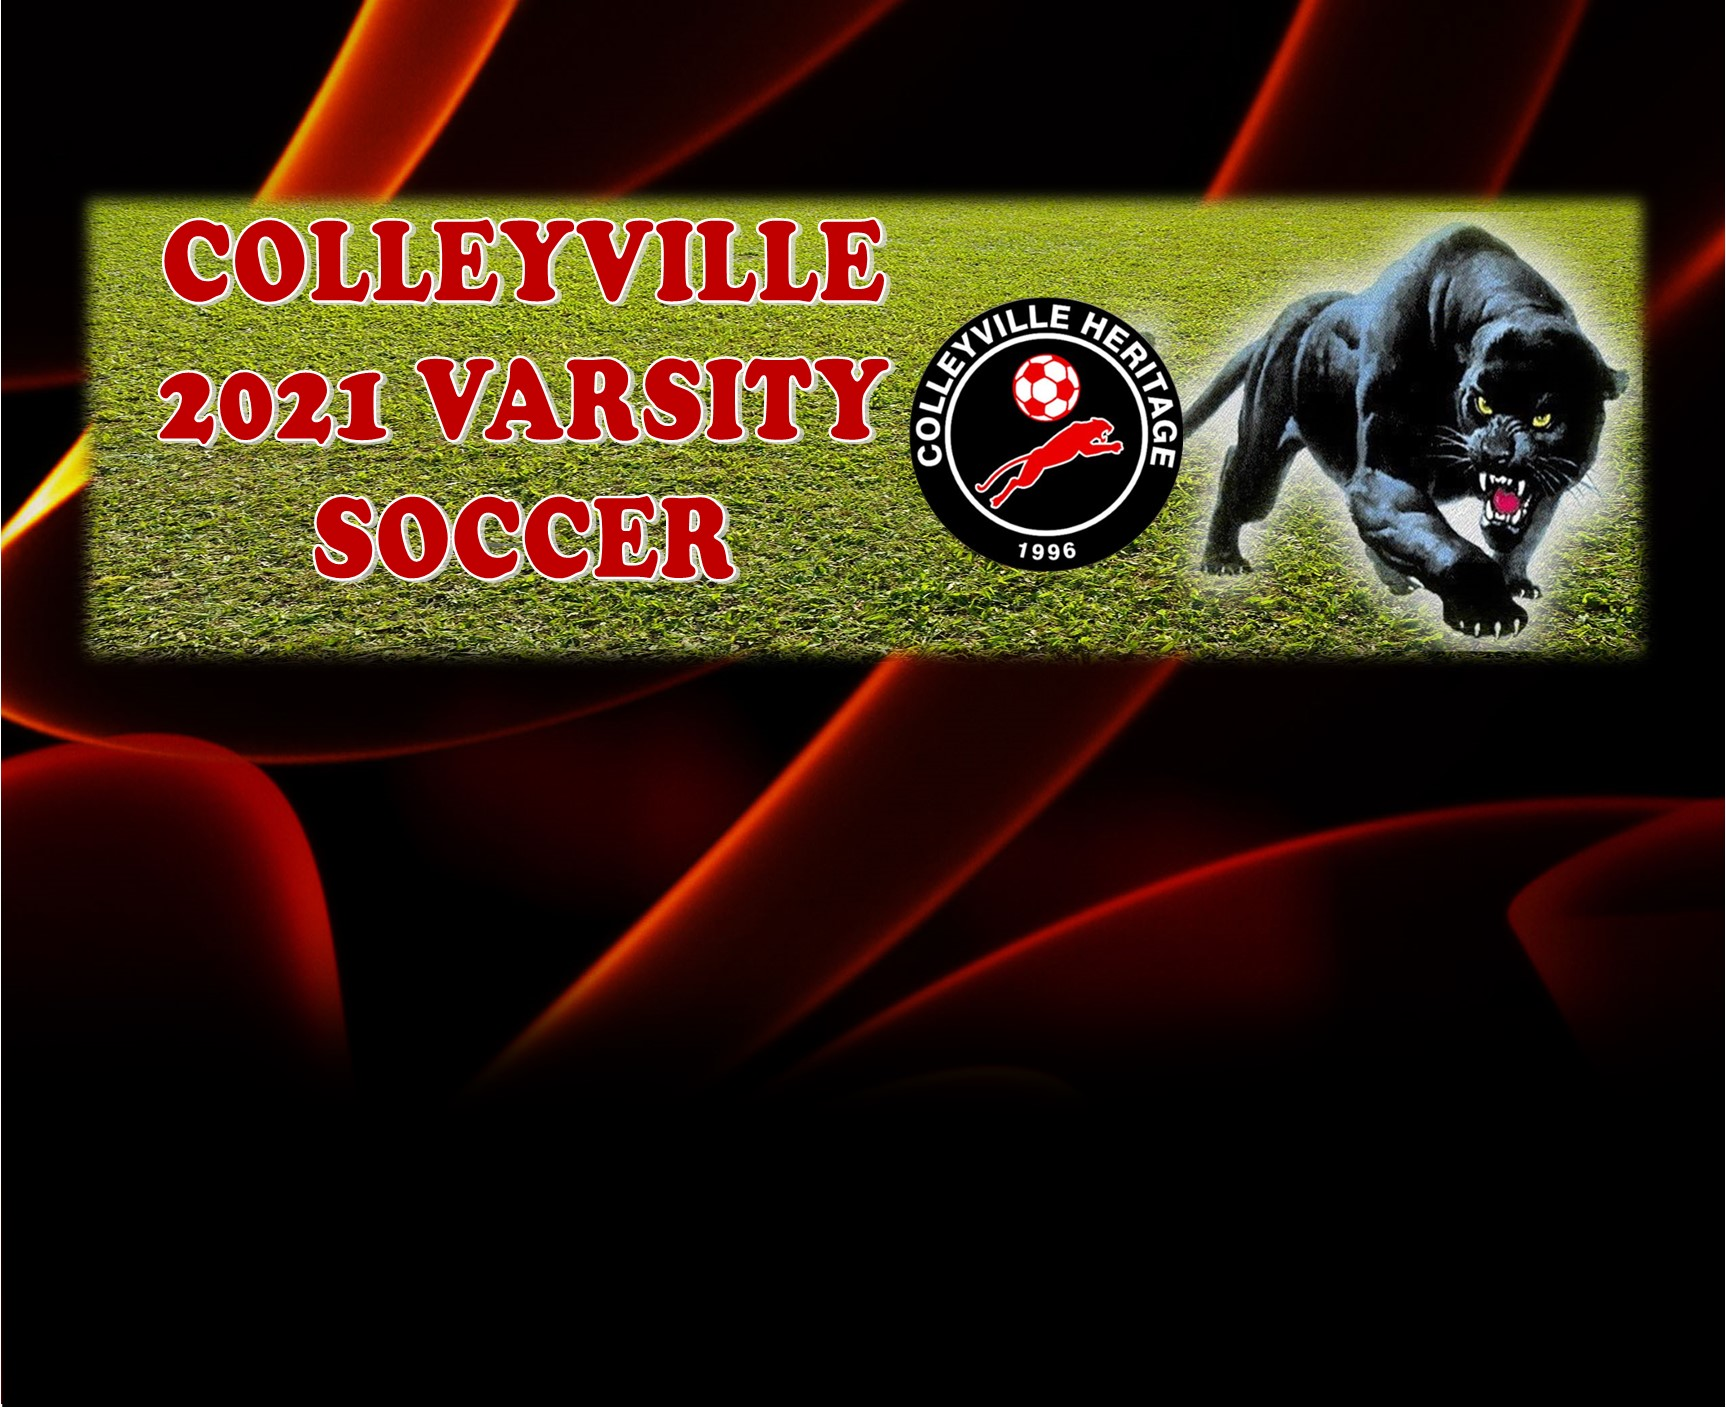 GCISD Soccer: Colleyville Panthers Triumph Over OD Wyatt Chaparrals 4-0 to  Win Area Championship